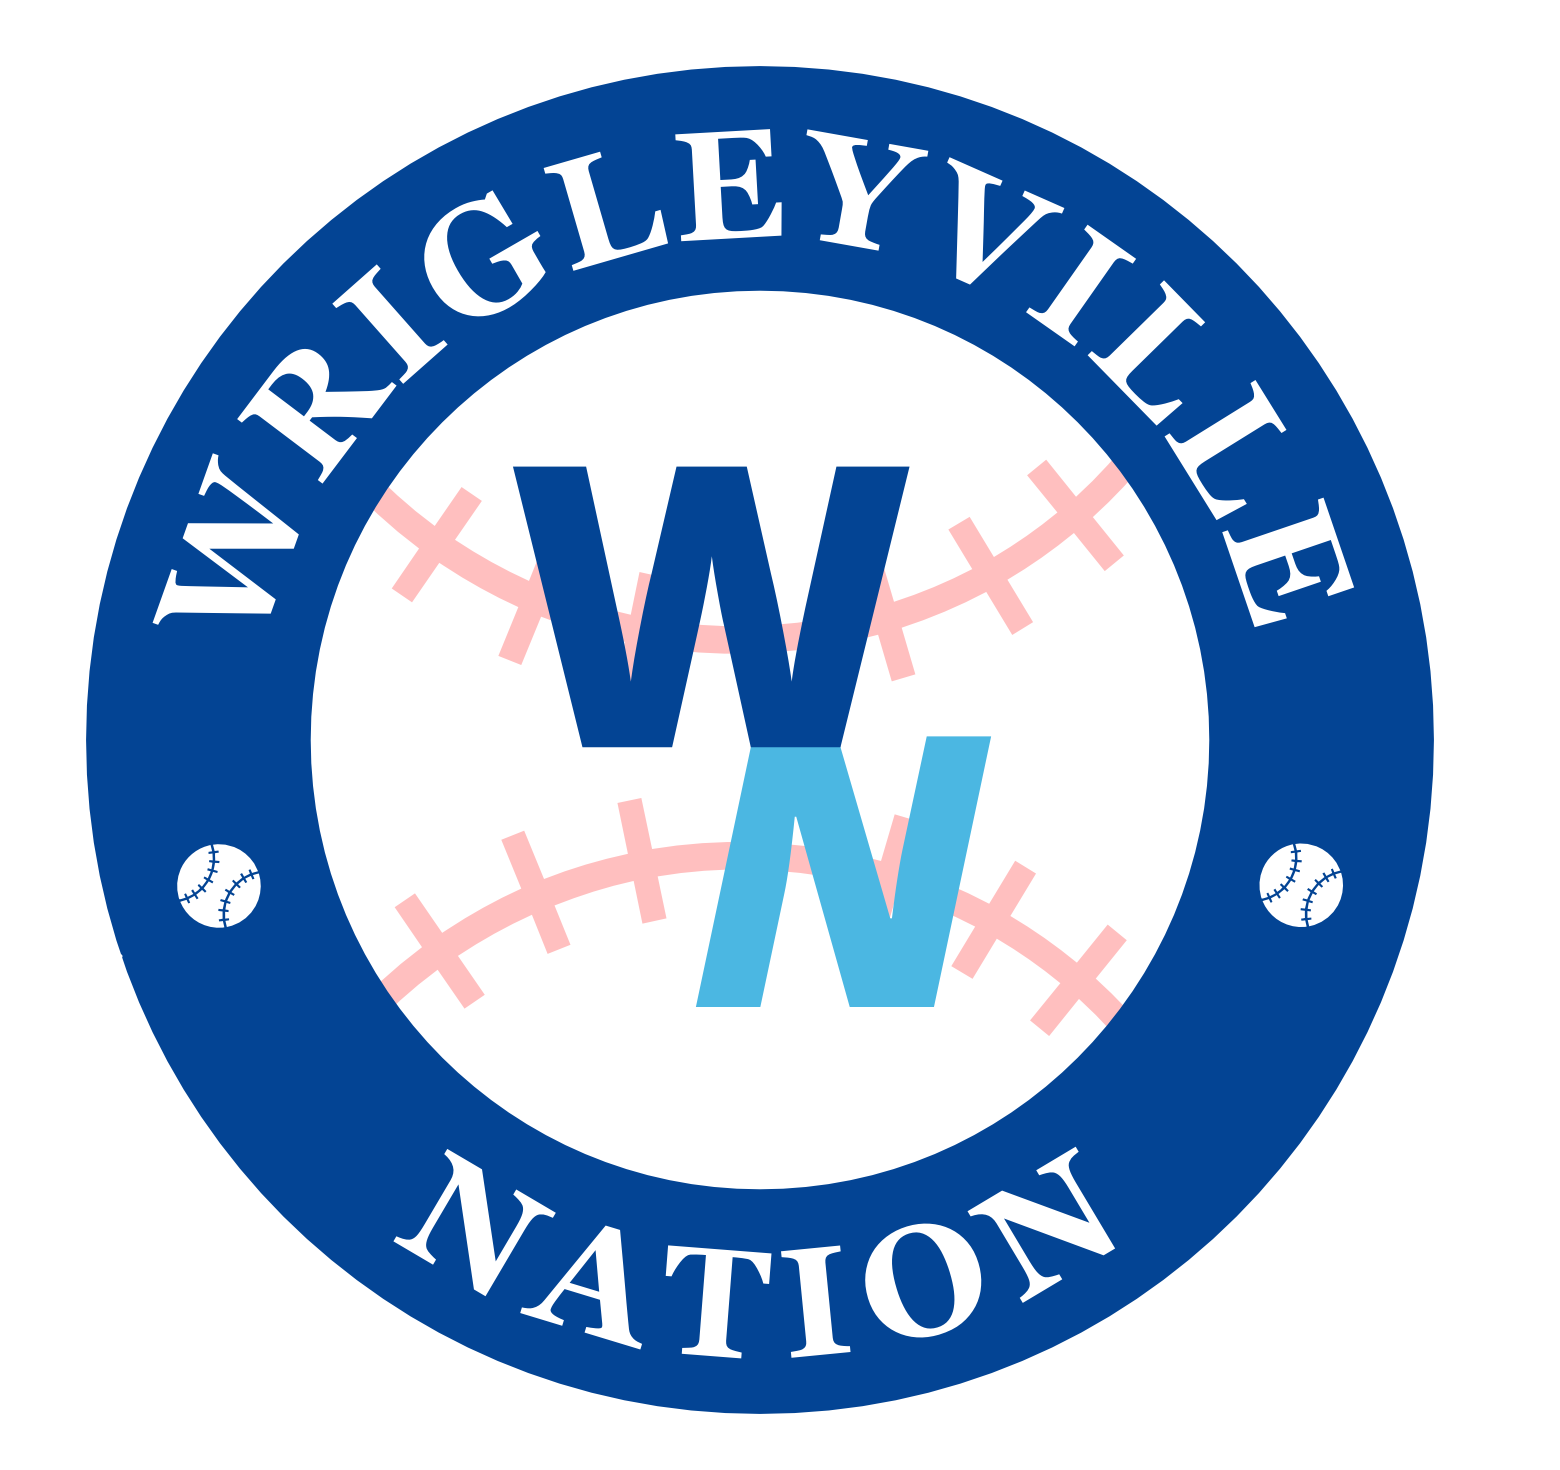 Wrigleyville Nation Ep 228 - Guest: Taylor McGregor, We Learn About Taylor & Being A Field Reporter, Next Series Preview, & More show art